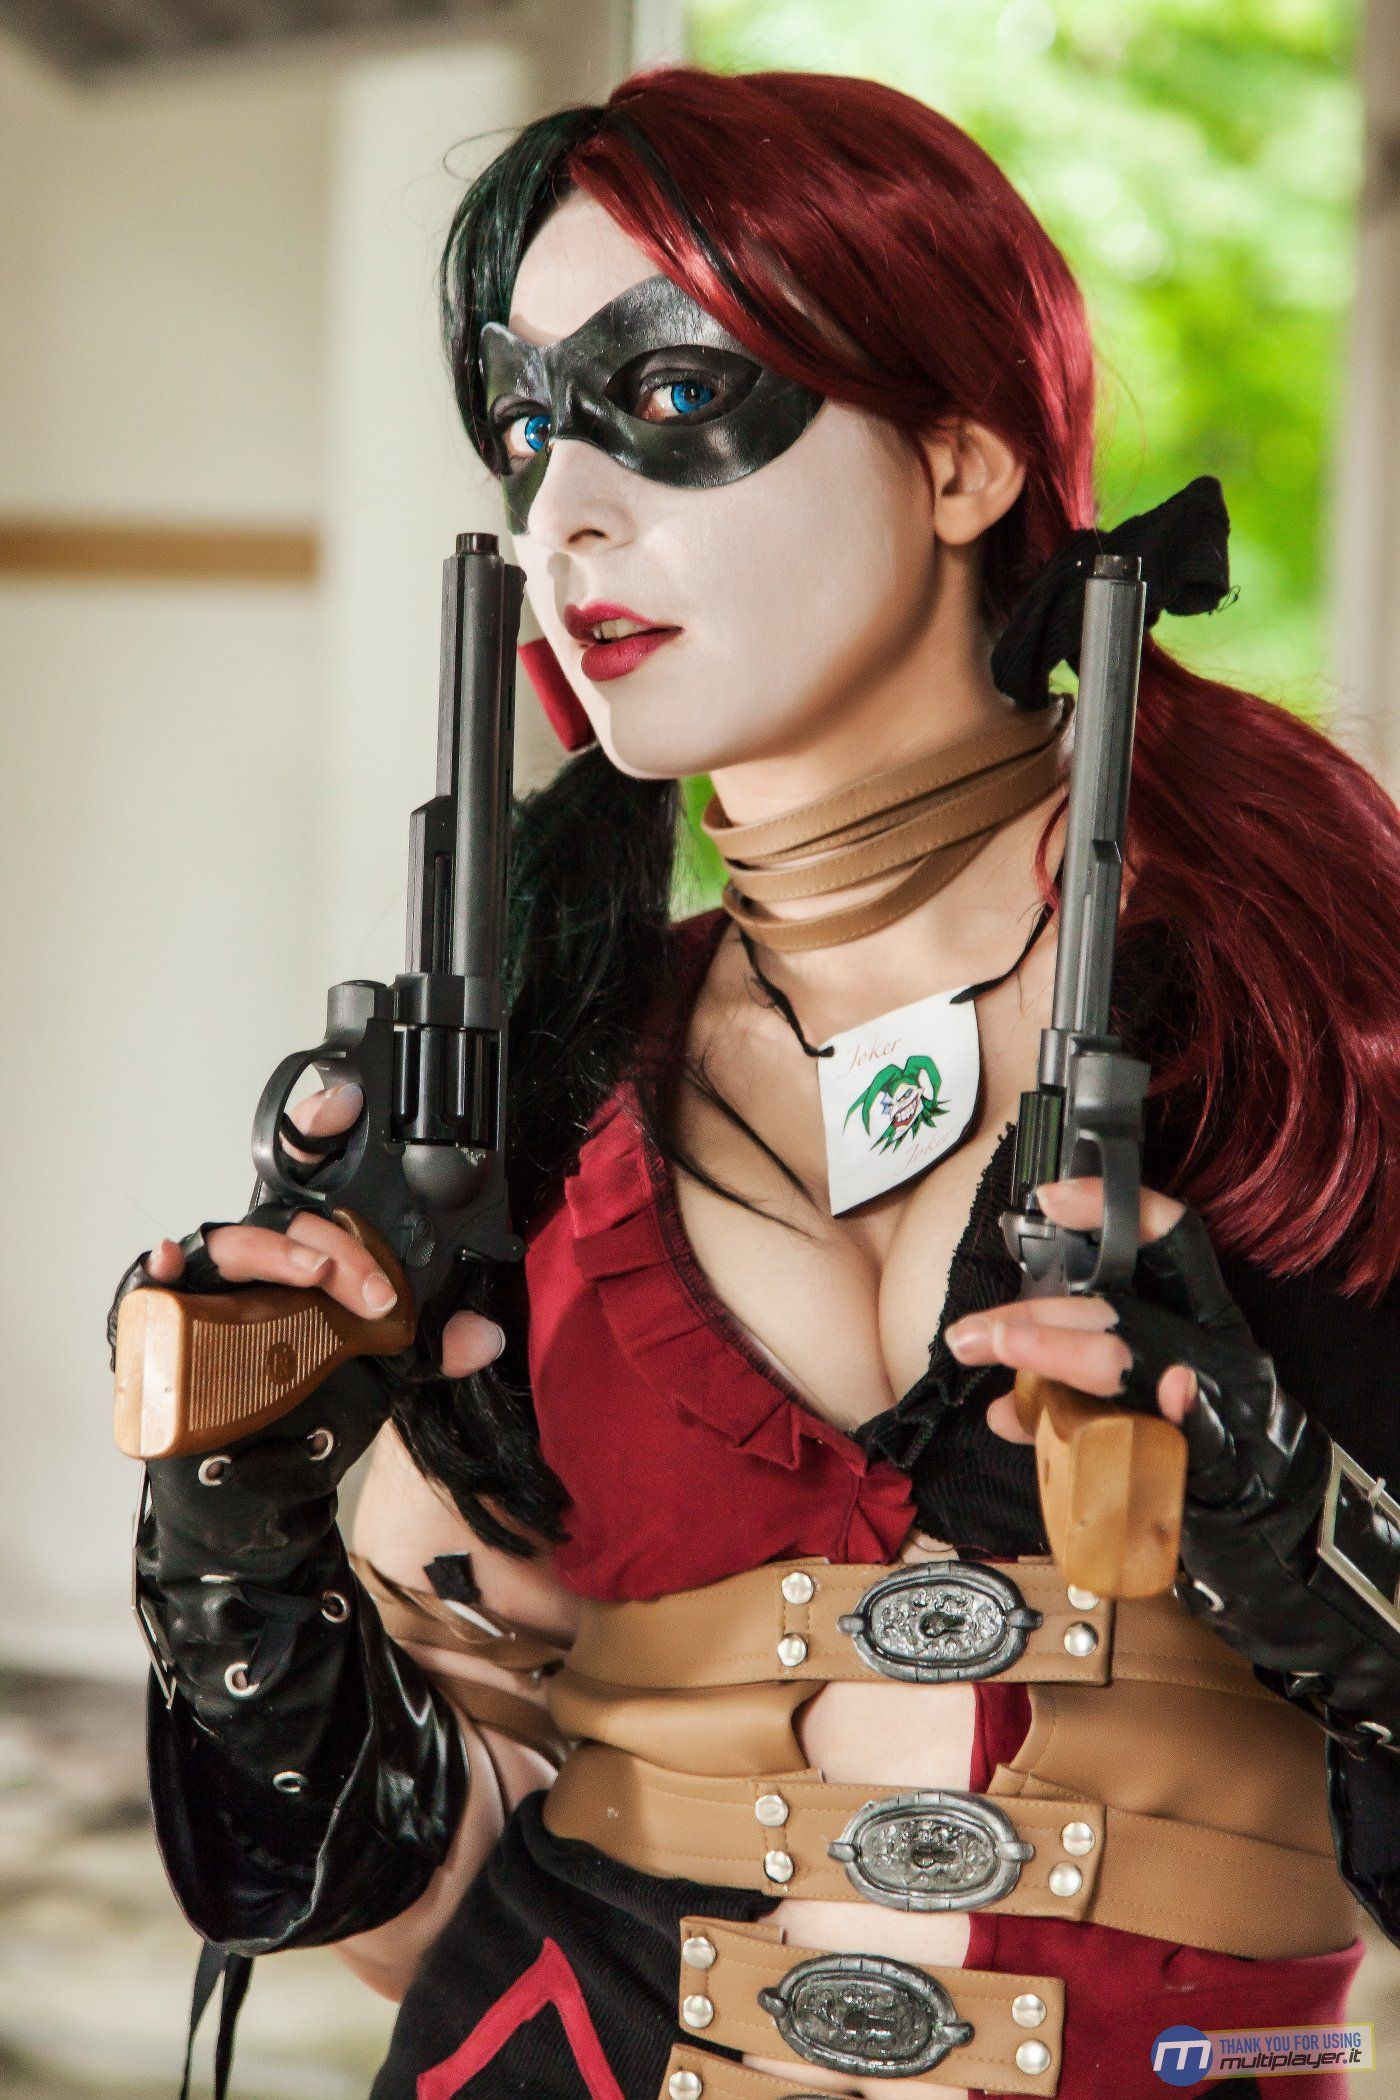 Character harley quinn version trinity from injustice gods character harley quinn version trinity from injustice gods among us voltagebd Gallery